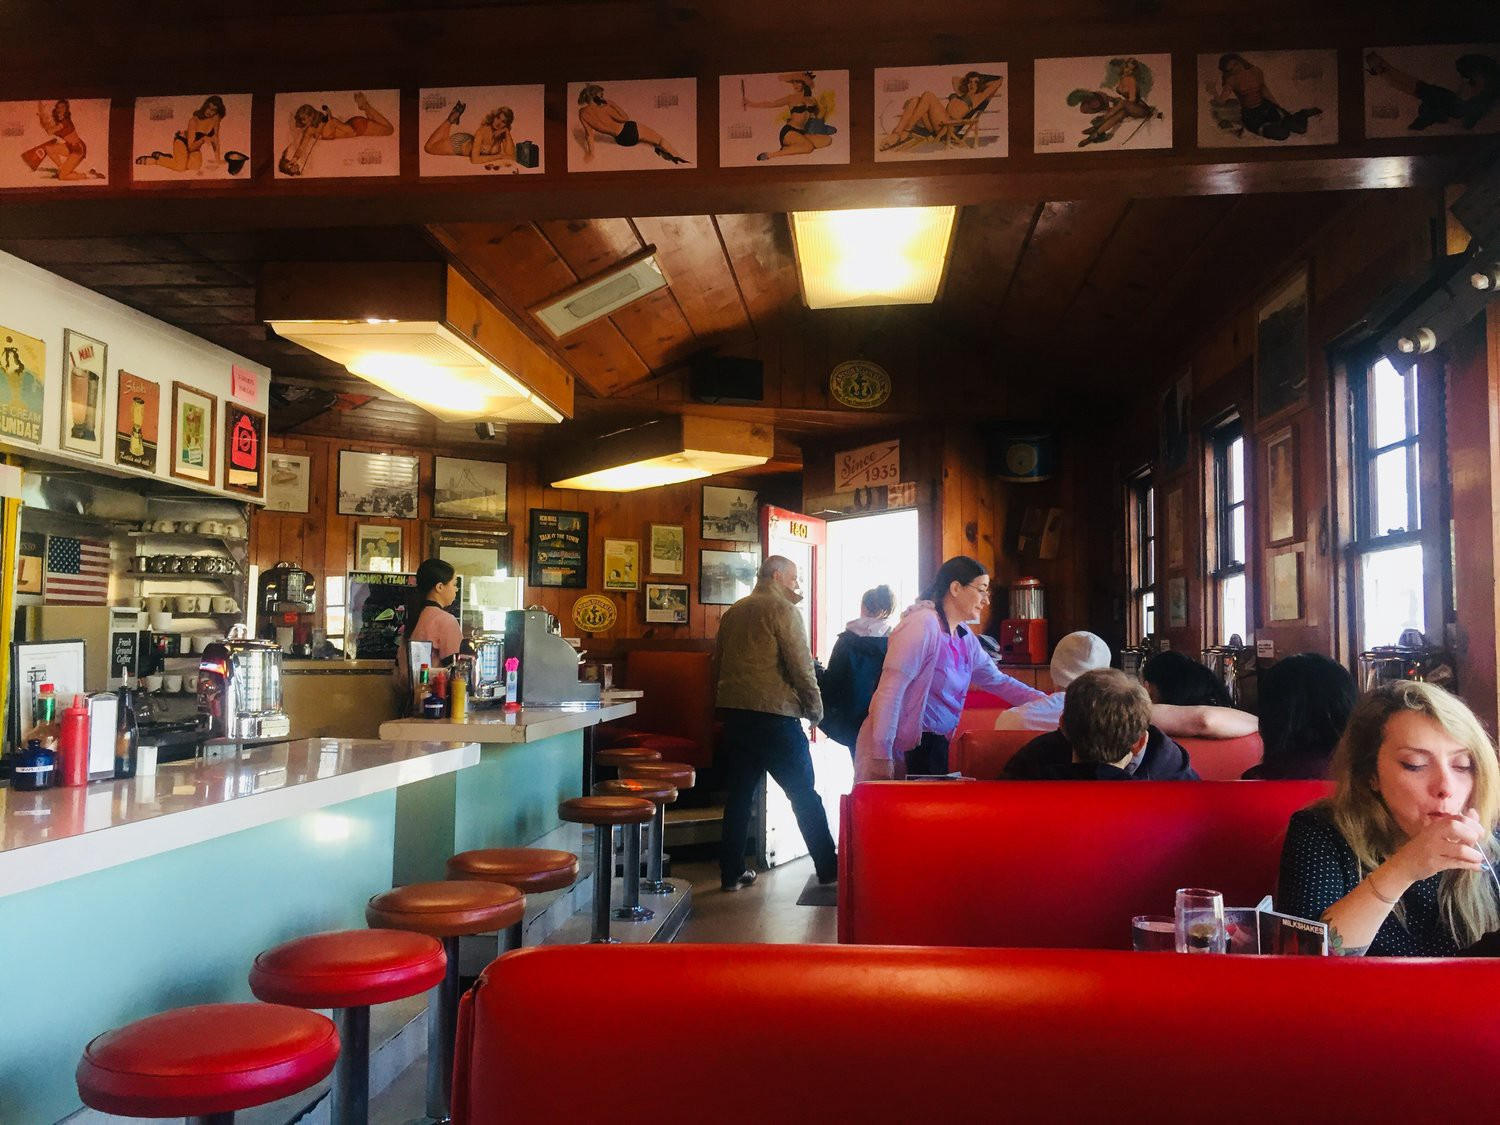 Nom Nom: It's Tops — A San Francisco Institution since 1935